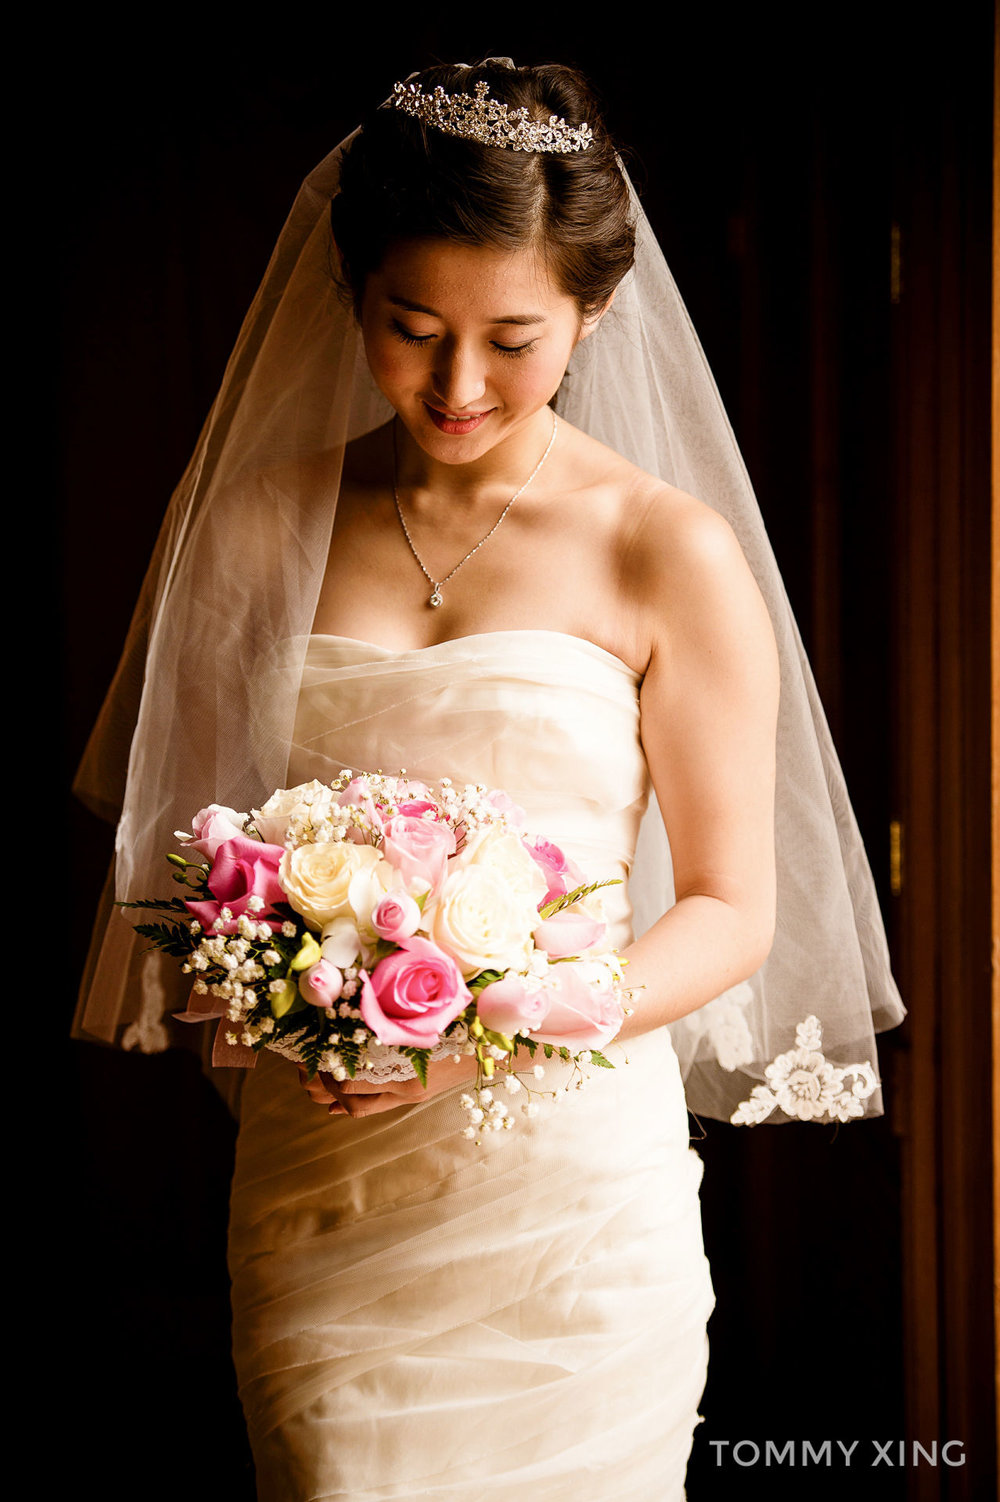 洛杉矶婚礼婚纱摄影师-TOMMY XING-LOS ANGELES WEDDING PHOTOGRAPHER-51.jpg